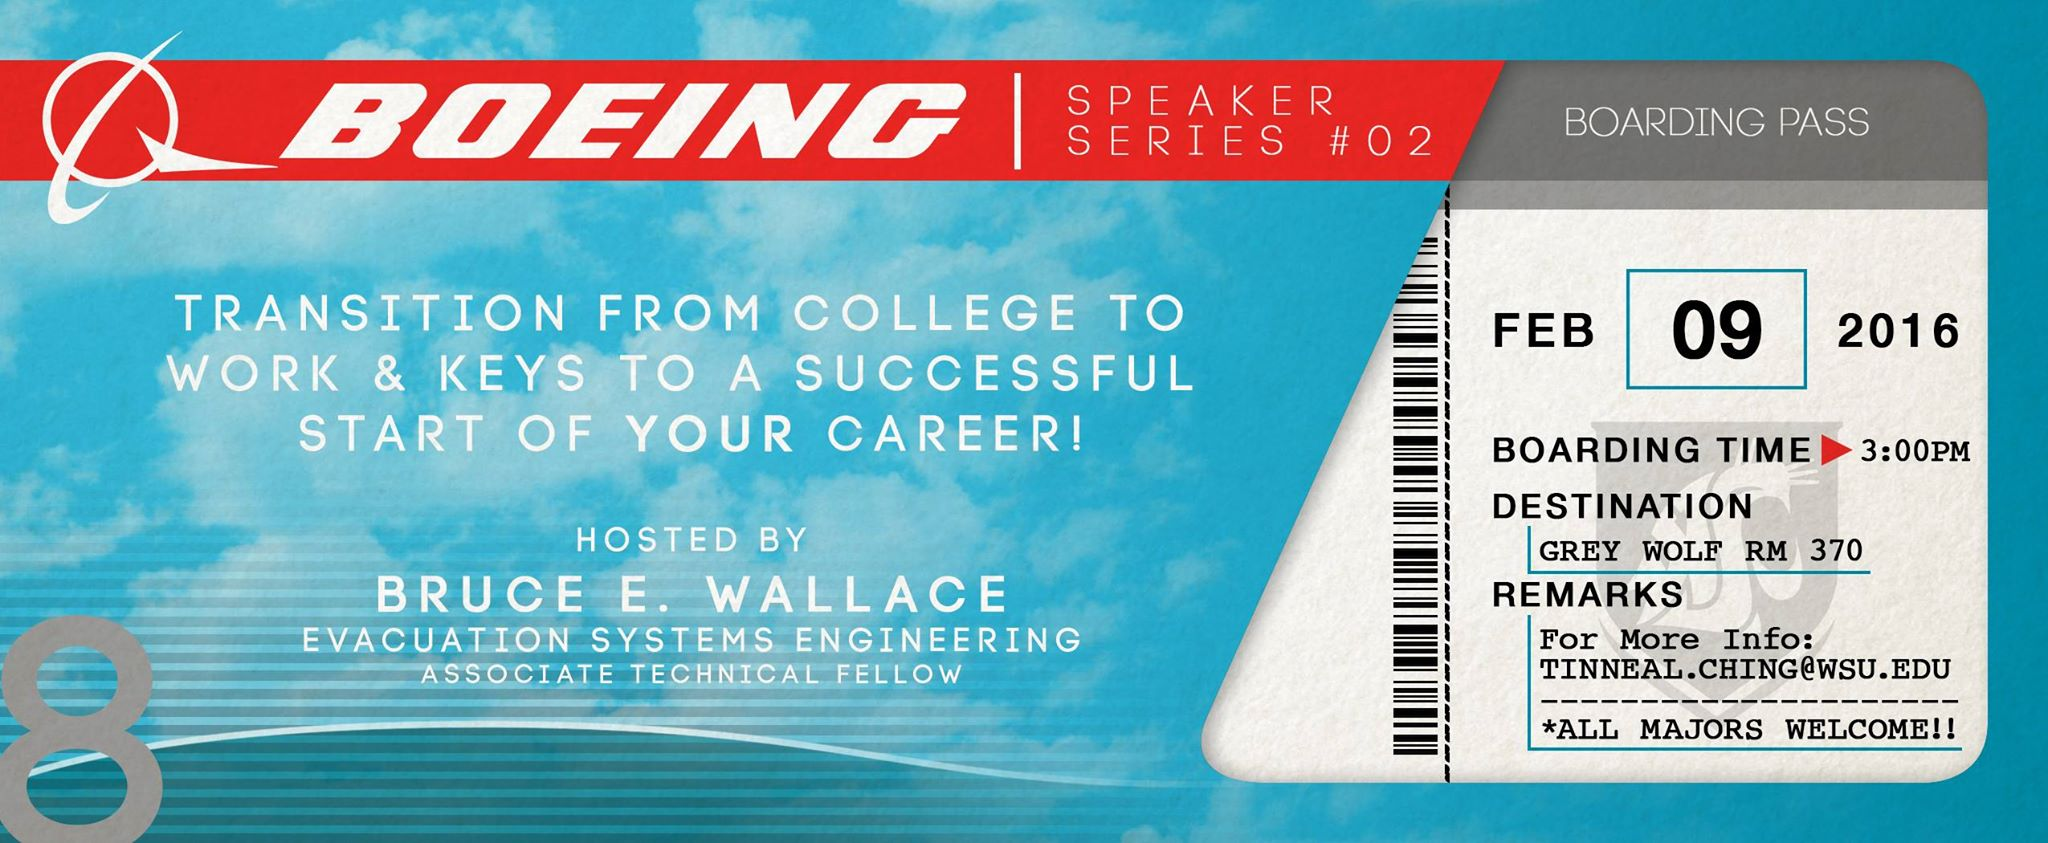 boeing speaker series 2 transition from college to workwsu north boeingspeaker2